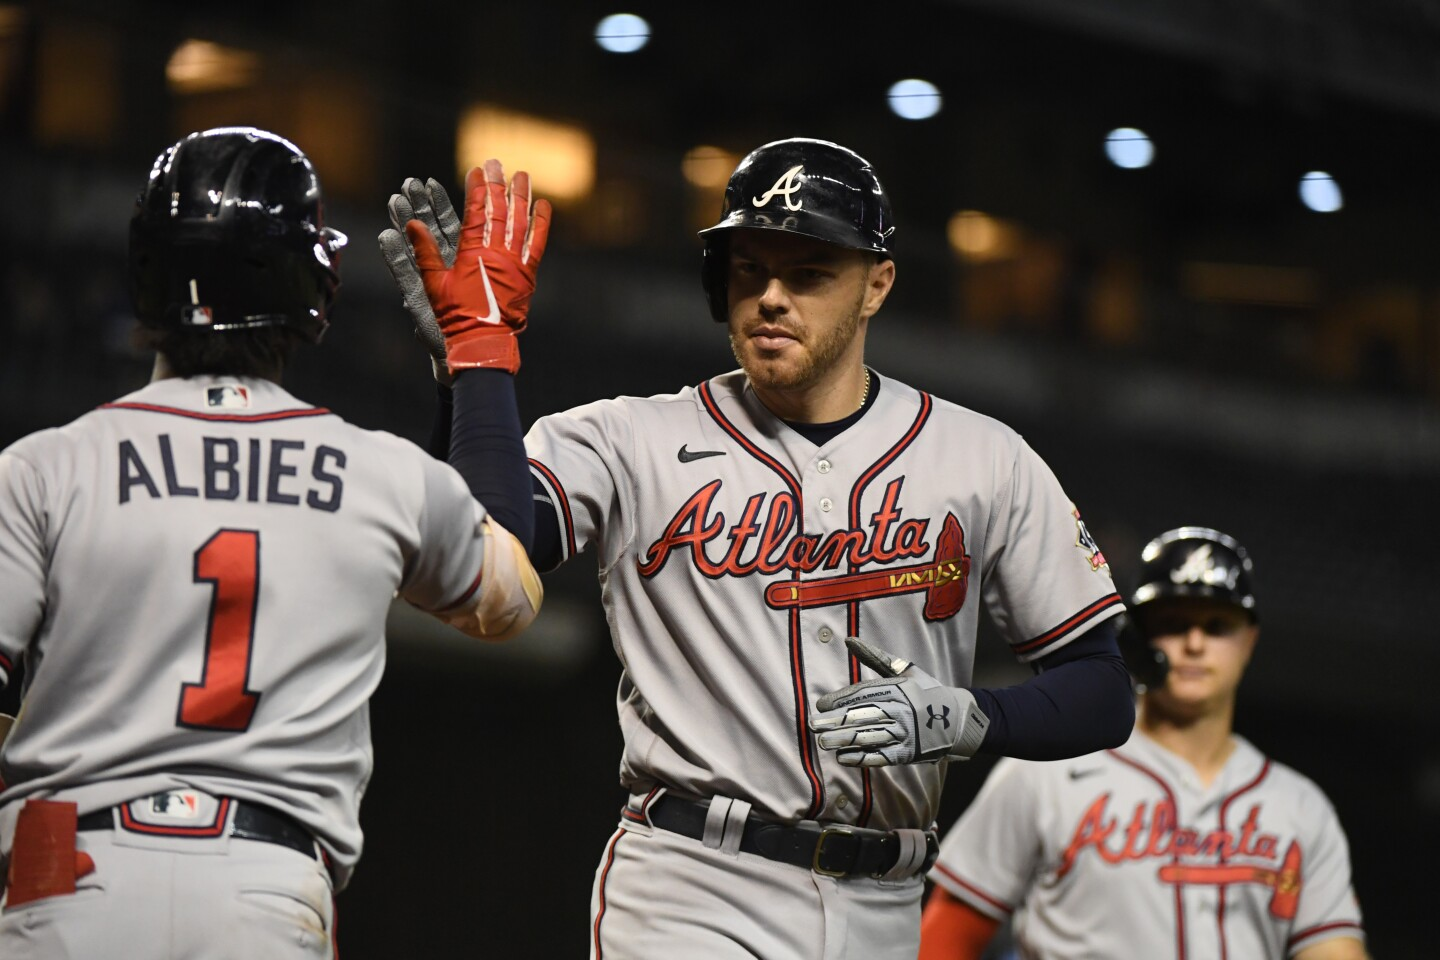 PHOENIX, ARIZONA - SEPTEMBER 22: Freddie Freeman #5 of the Atlanta Braves celebrates with Ozzie Albies #1 after hitting a two-run home run off Tyler Clippard #36 of the Arizona Diamondbacks during the ninth inning at Chase Field on September 22, 2021 in Phoenix, Arizona. (Photo by Norm Hall/Getty Images)